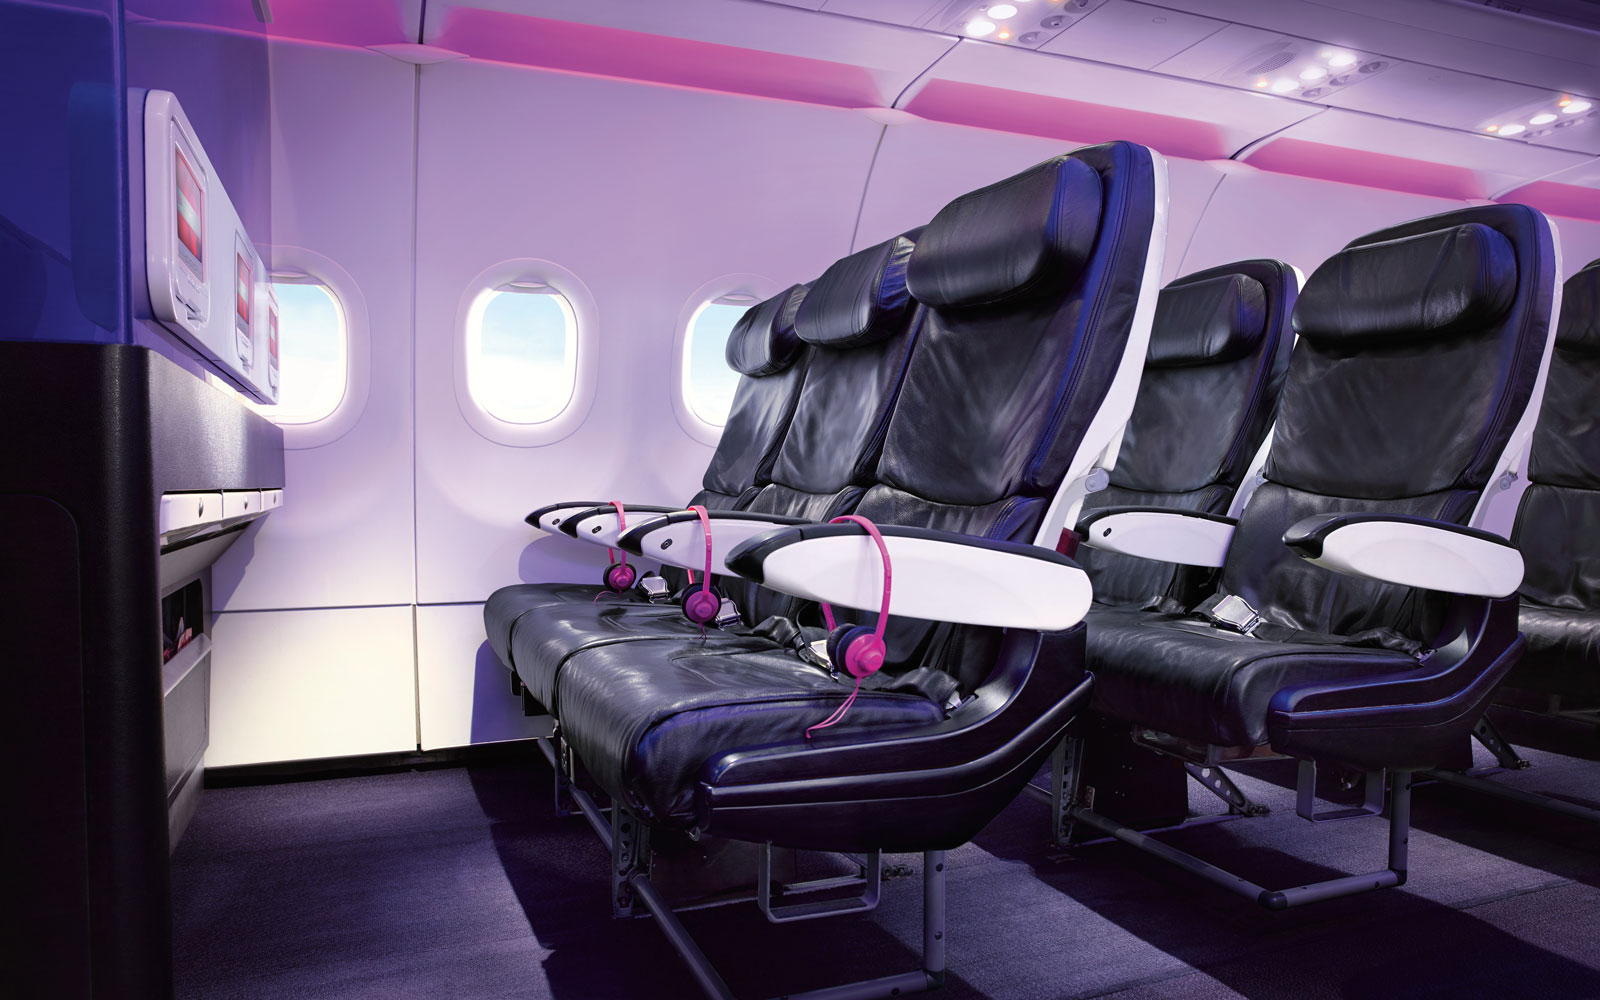 Virgin America Holiday Sale Offers Premium Seats Starting at $99